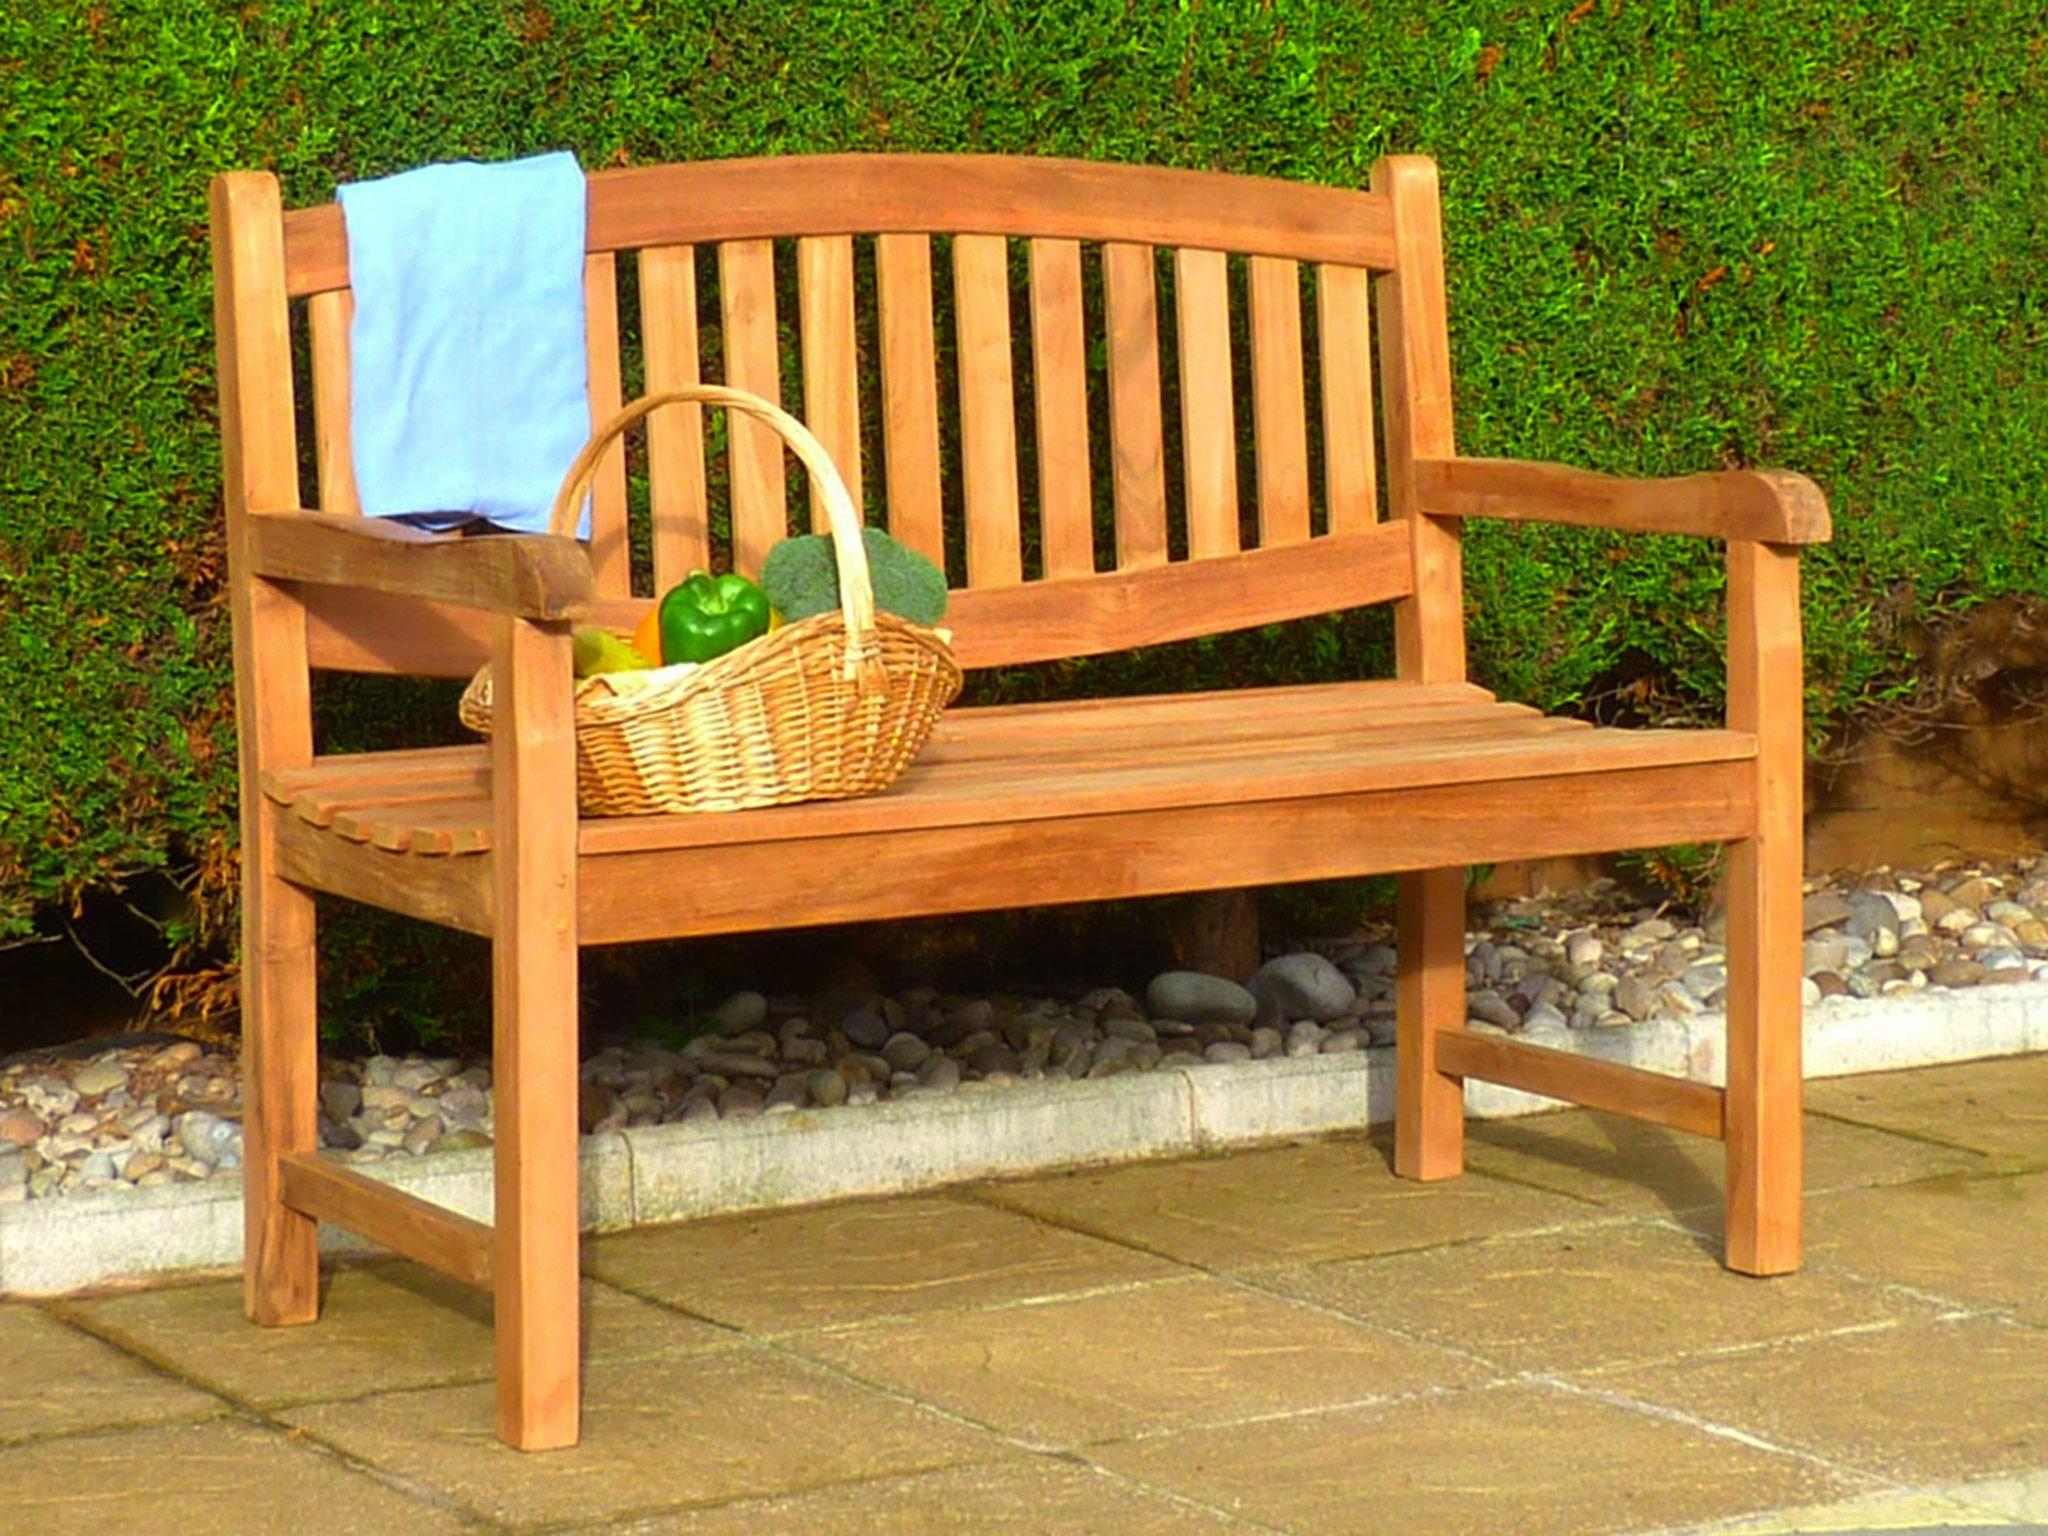 9 Beautiful Garden Benches With Space To Store | Carolina Intended For Wood Garden Benches (View 11 of 25)